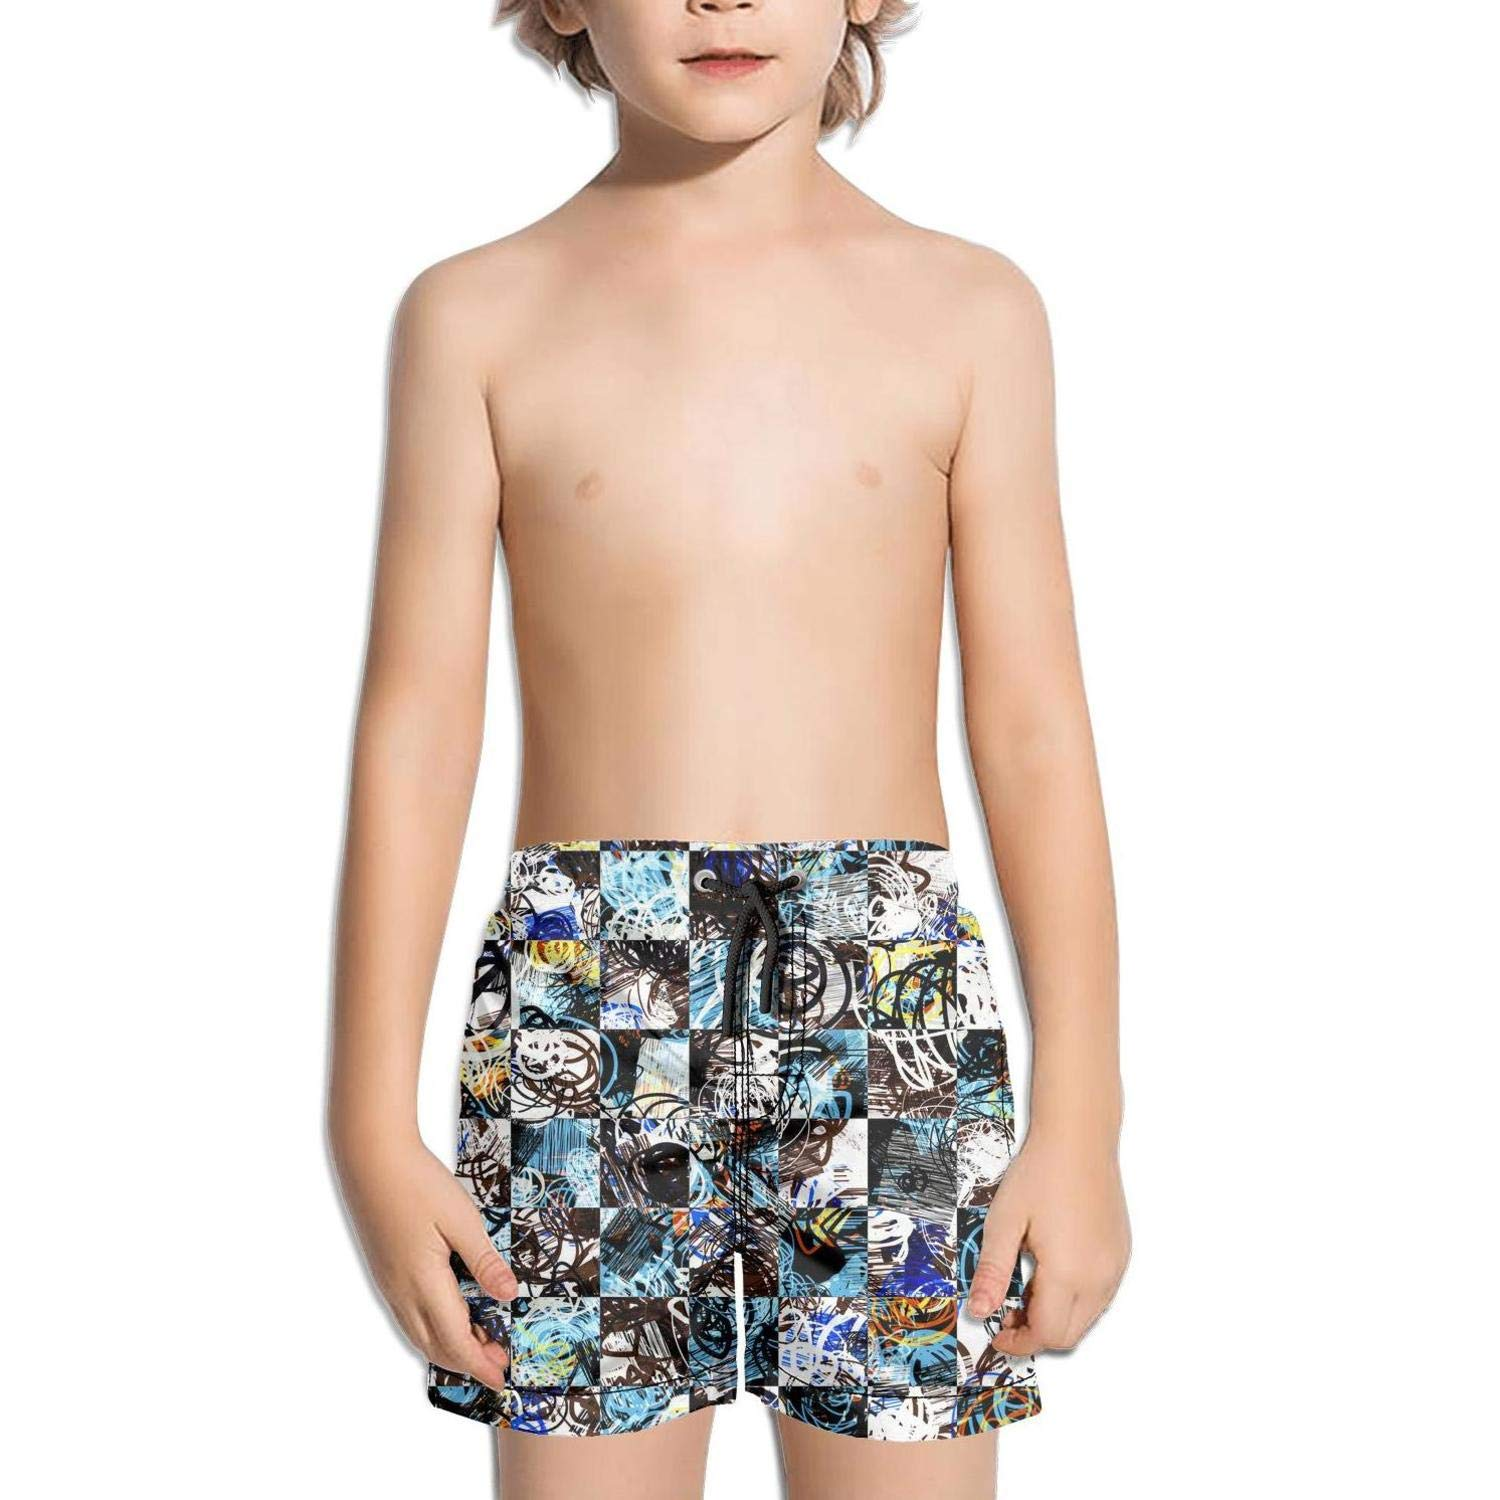 Ouxioaz Boys Swim Trunk Checkerboard Like Texture Shattered Stars Beach Board Shorts